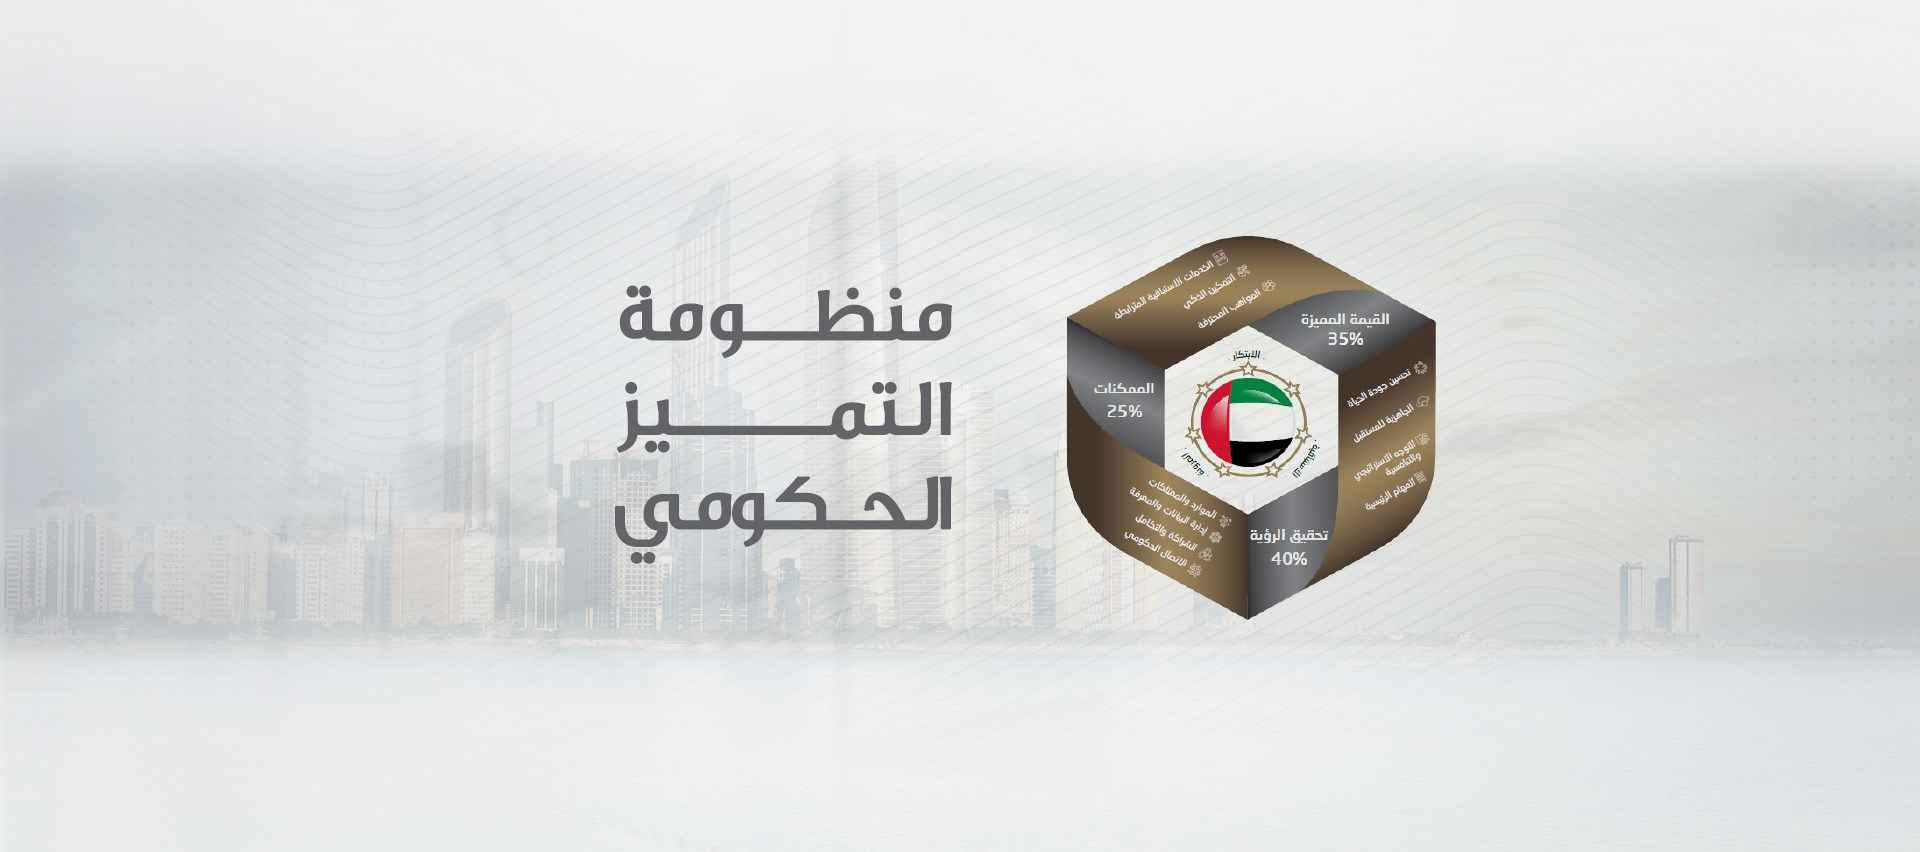 Goverment-excellence-banner-ar.jpg